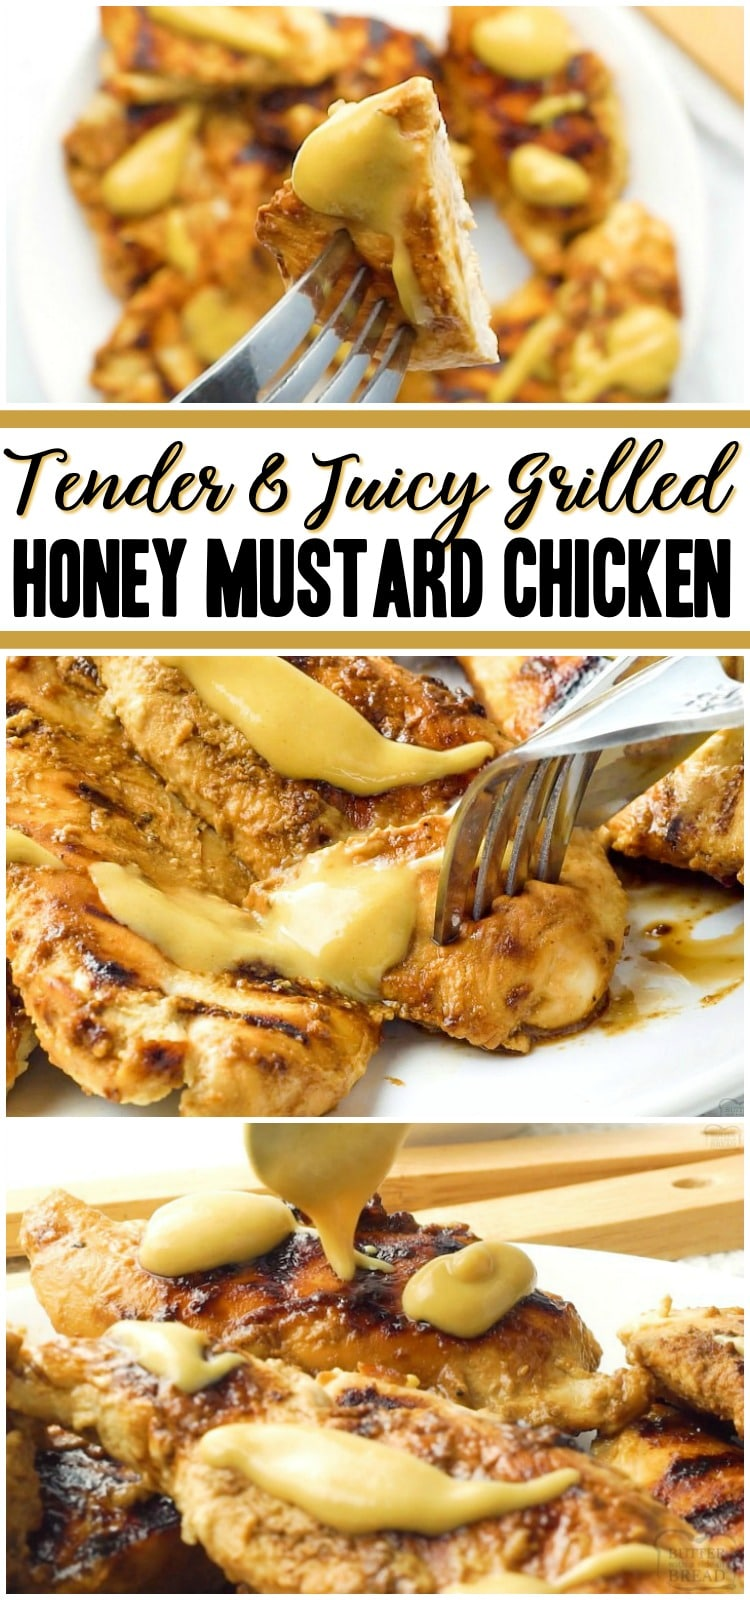 Grilled Honey Mustard Chicken recipe with a simple 4 ingredient sauce that's incredible! Yields perfectly grilled, tender, juicy chicken with amazing flavor. #chicken #grilled #honey #mustard #dinner #recipe from BUTTER WITH A SIDE OF BREAD